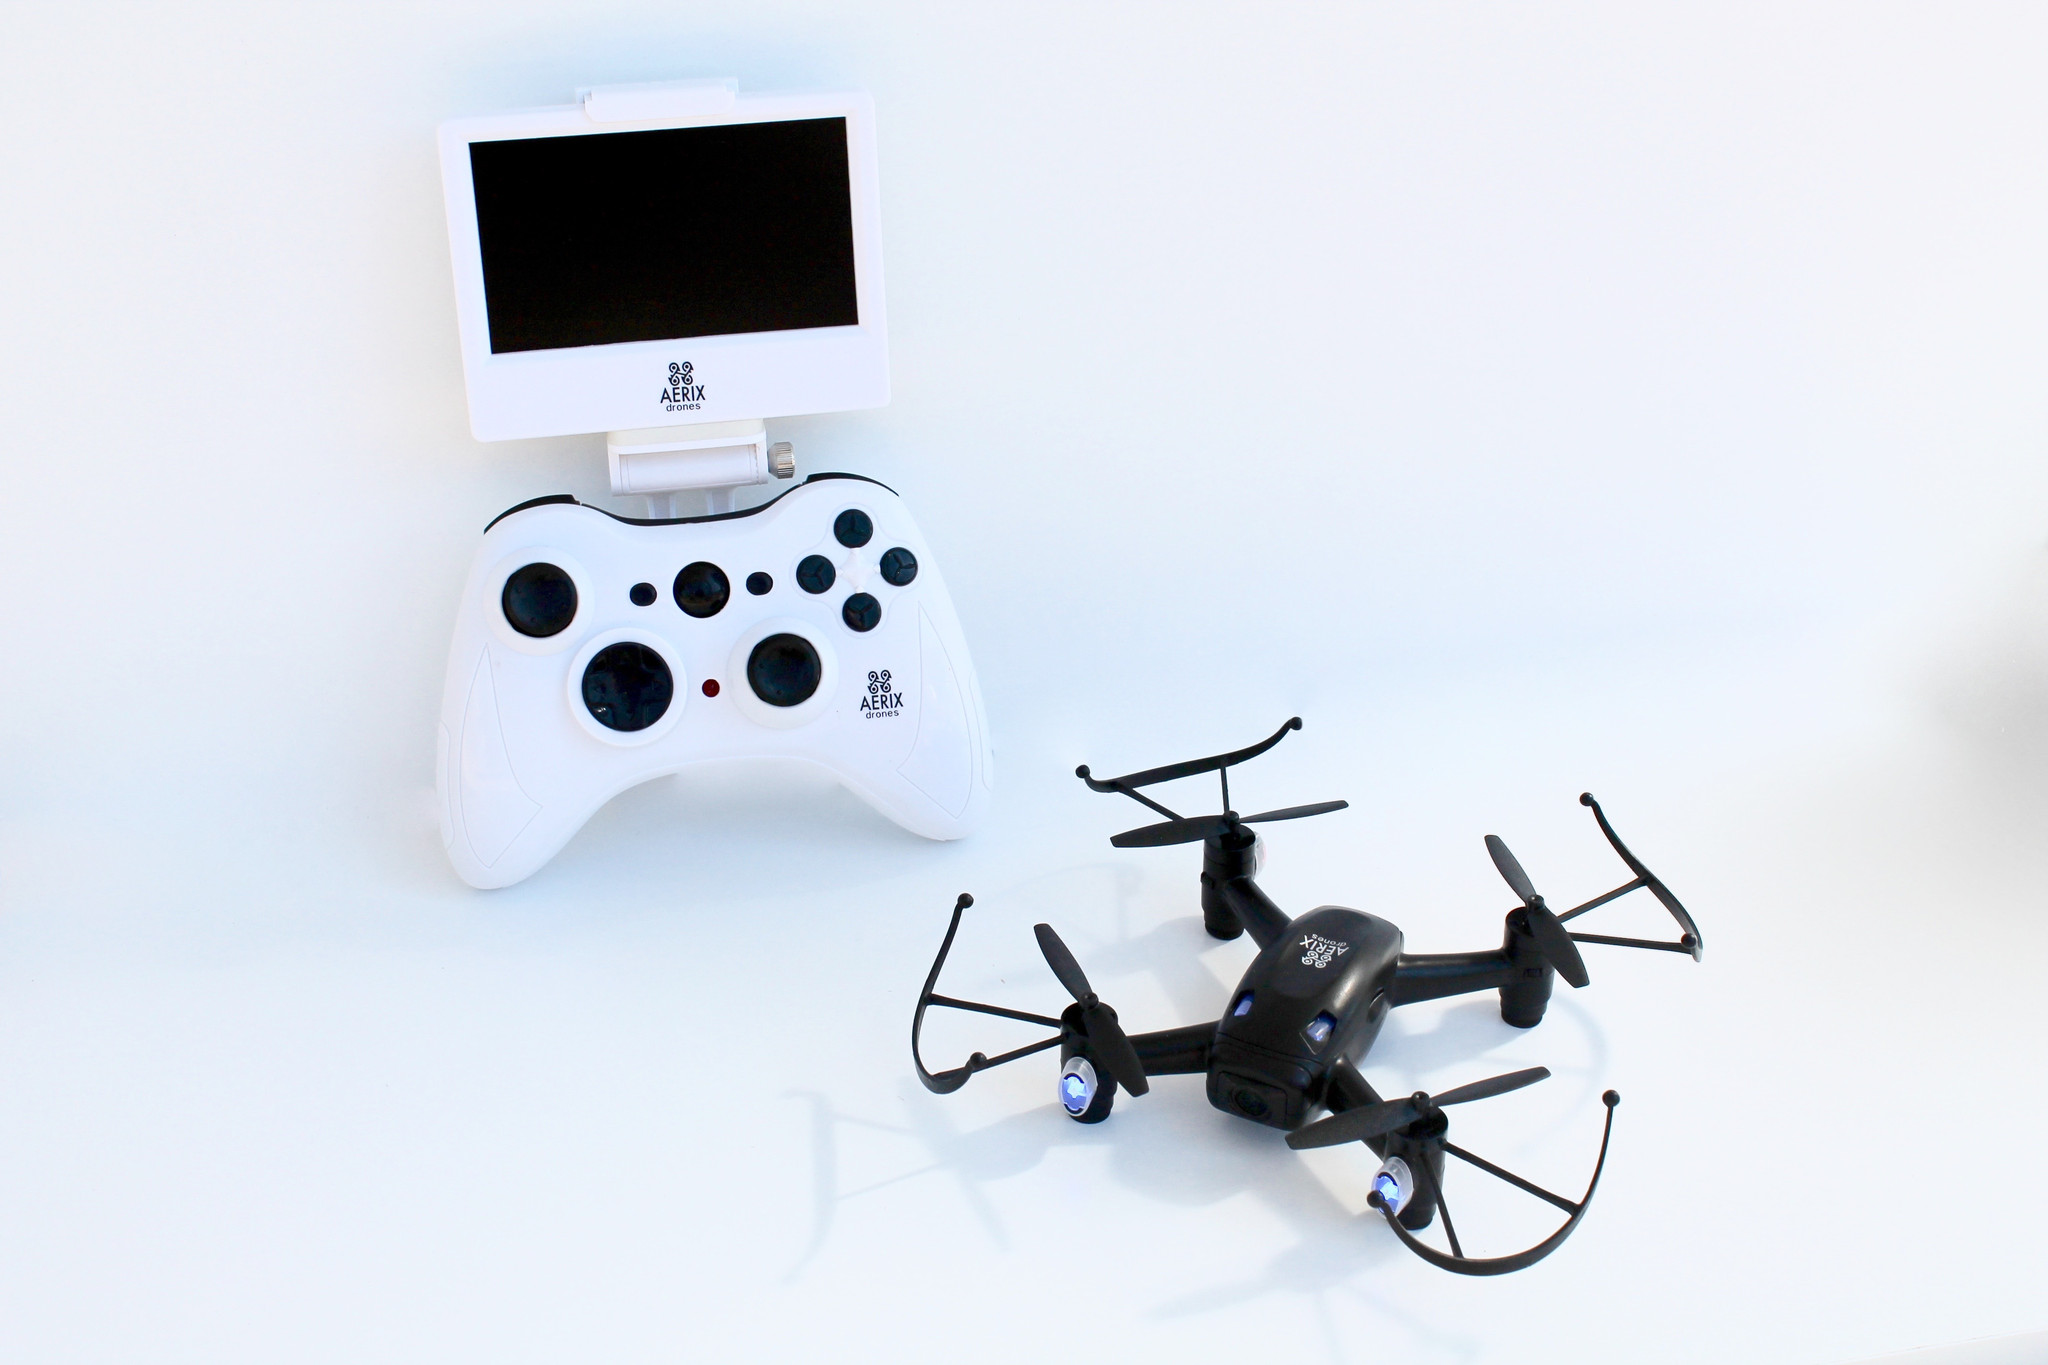 The Best Cheap Drones - Black Talon - Micro FPV Beginner Racing Drone